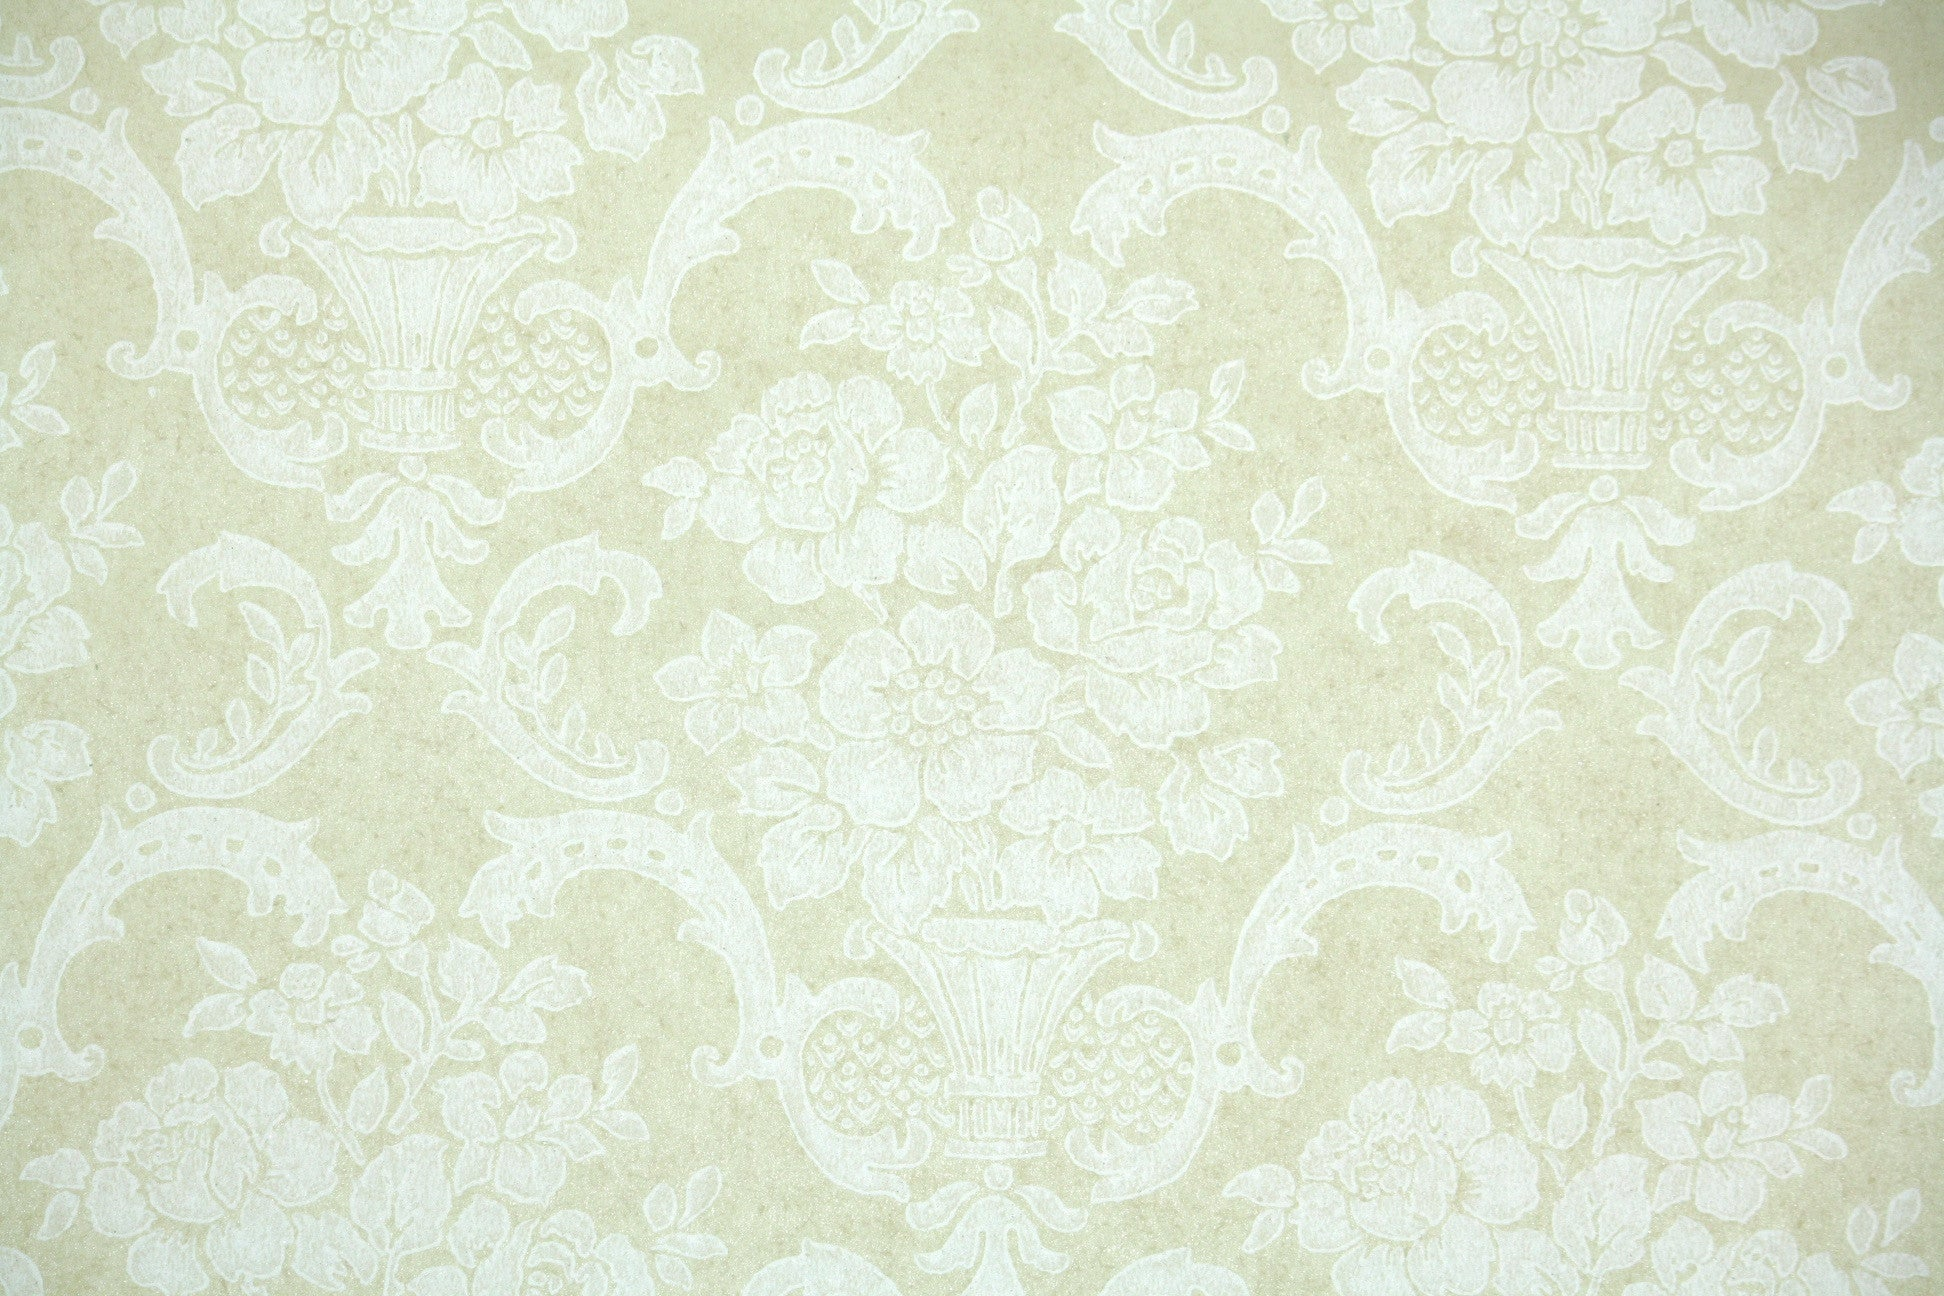 1960s Floral Damask Vintage Wallpaper Hannah S Treasures Vintage